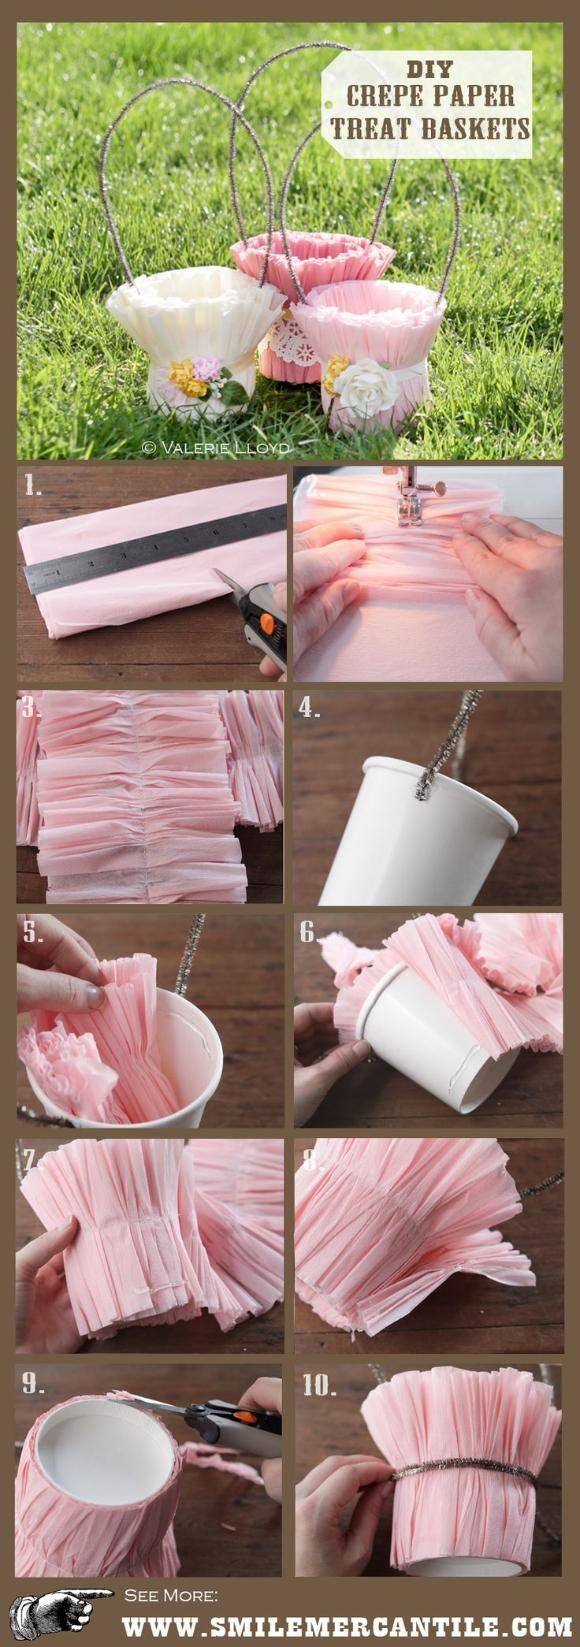 crepe paper related articles - Pandahall.com